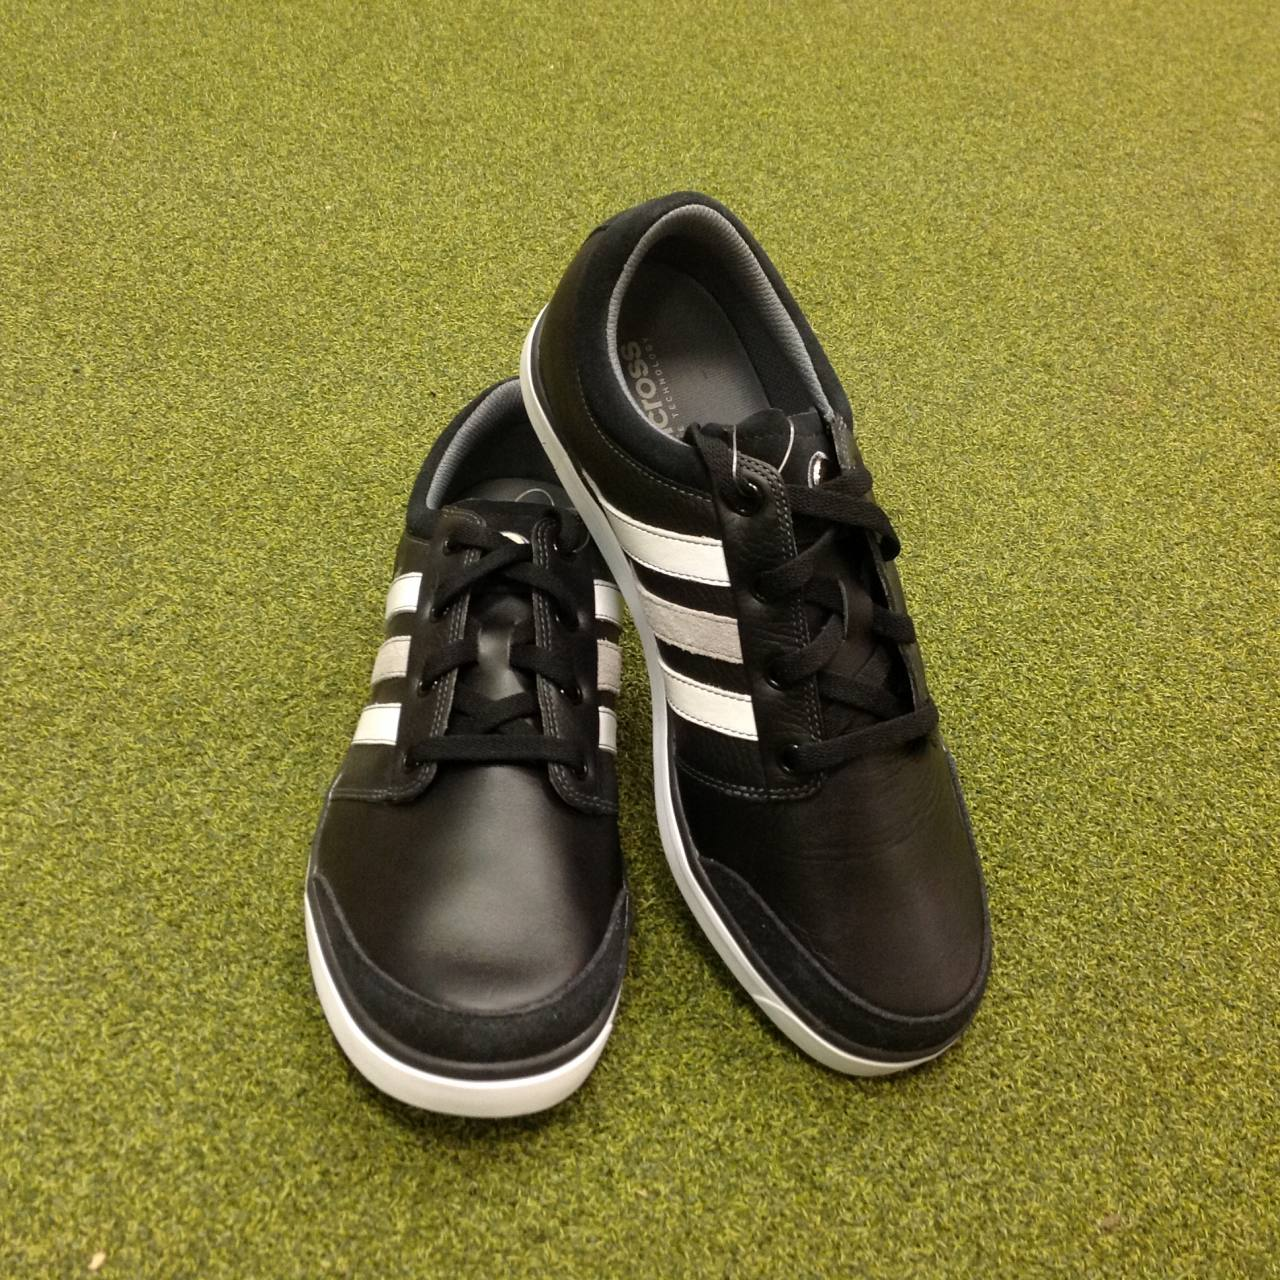 bdcb1d15c5b1ff Details about NEW Adidas Adicross Gripmore Leather Golf Shoes - UK Size 8.5  - US 9 - EU 42 2/3